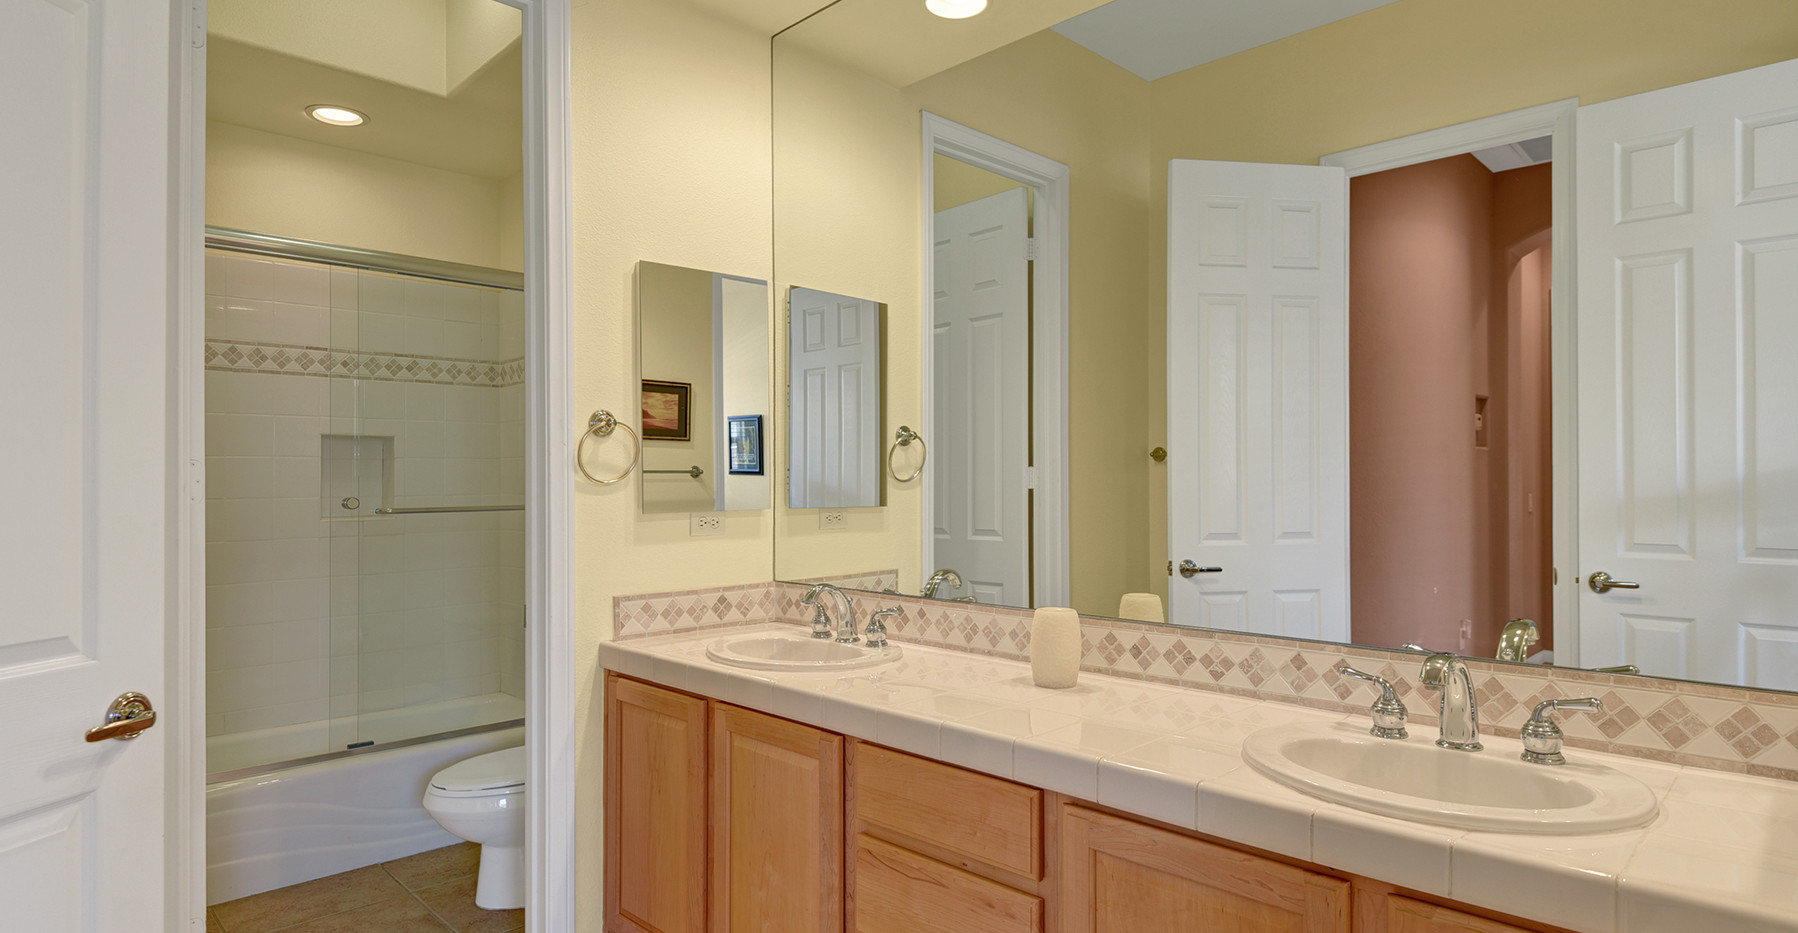 GUEST BEDROOM BATHROOM REVERSE MLS.jpg